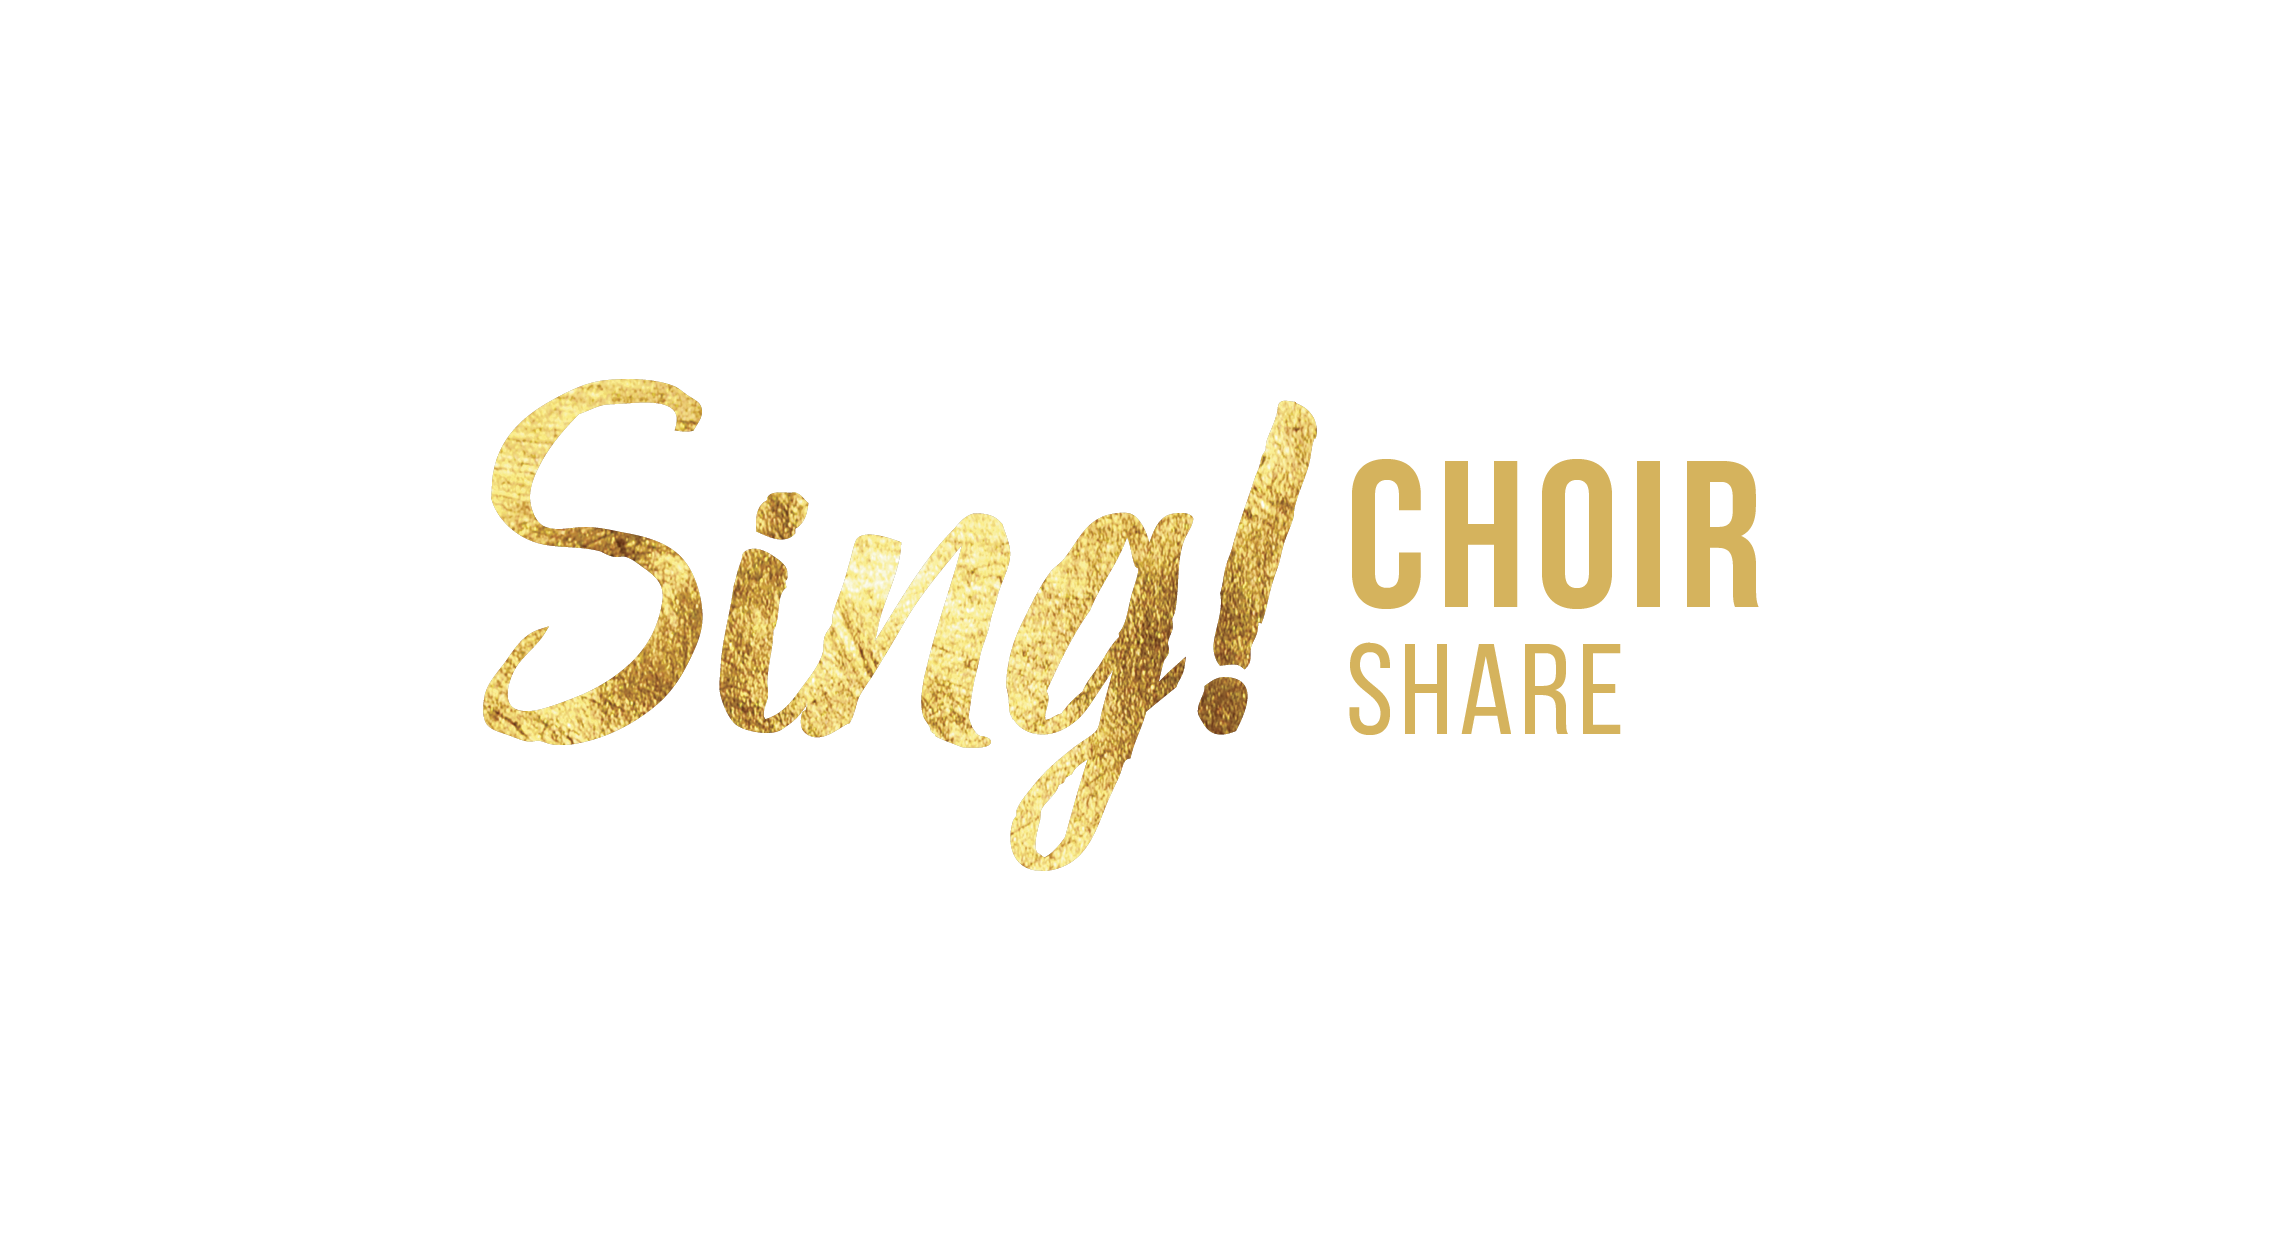 sing web banner - choir share.png